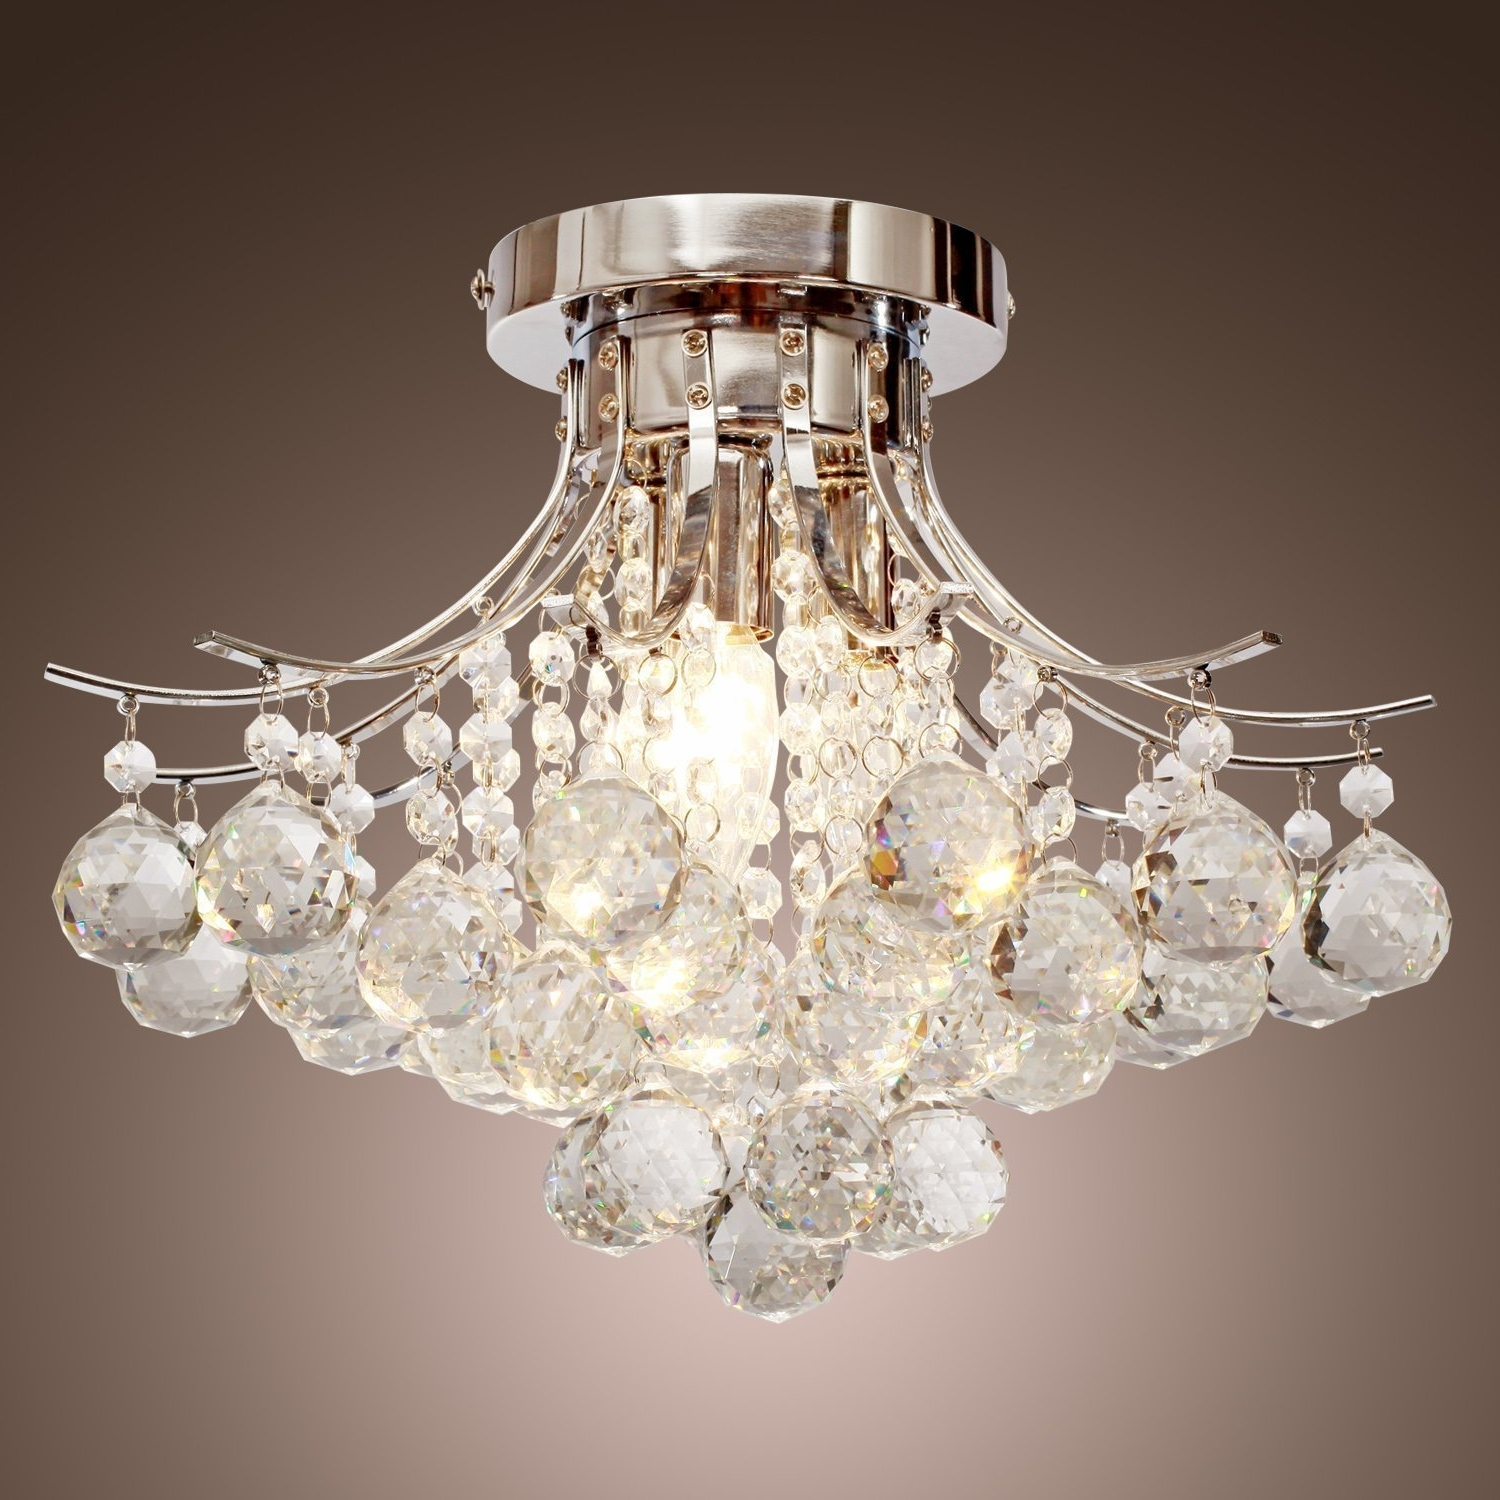 Sparkly Chandeliers In Widely Used Locoâ Chrome Finish Crystal Chandelier With 3 Lights, Mini Style (View 3 of 15)